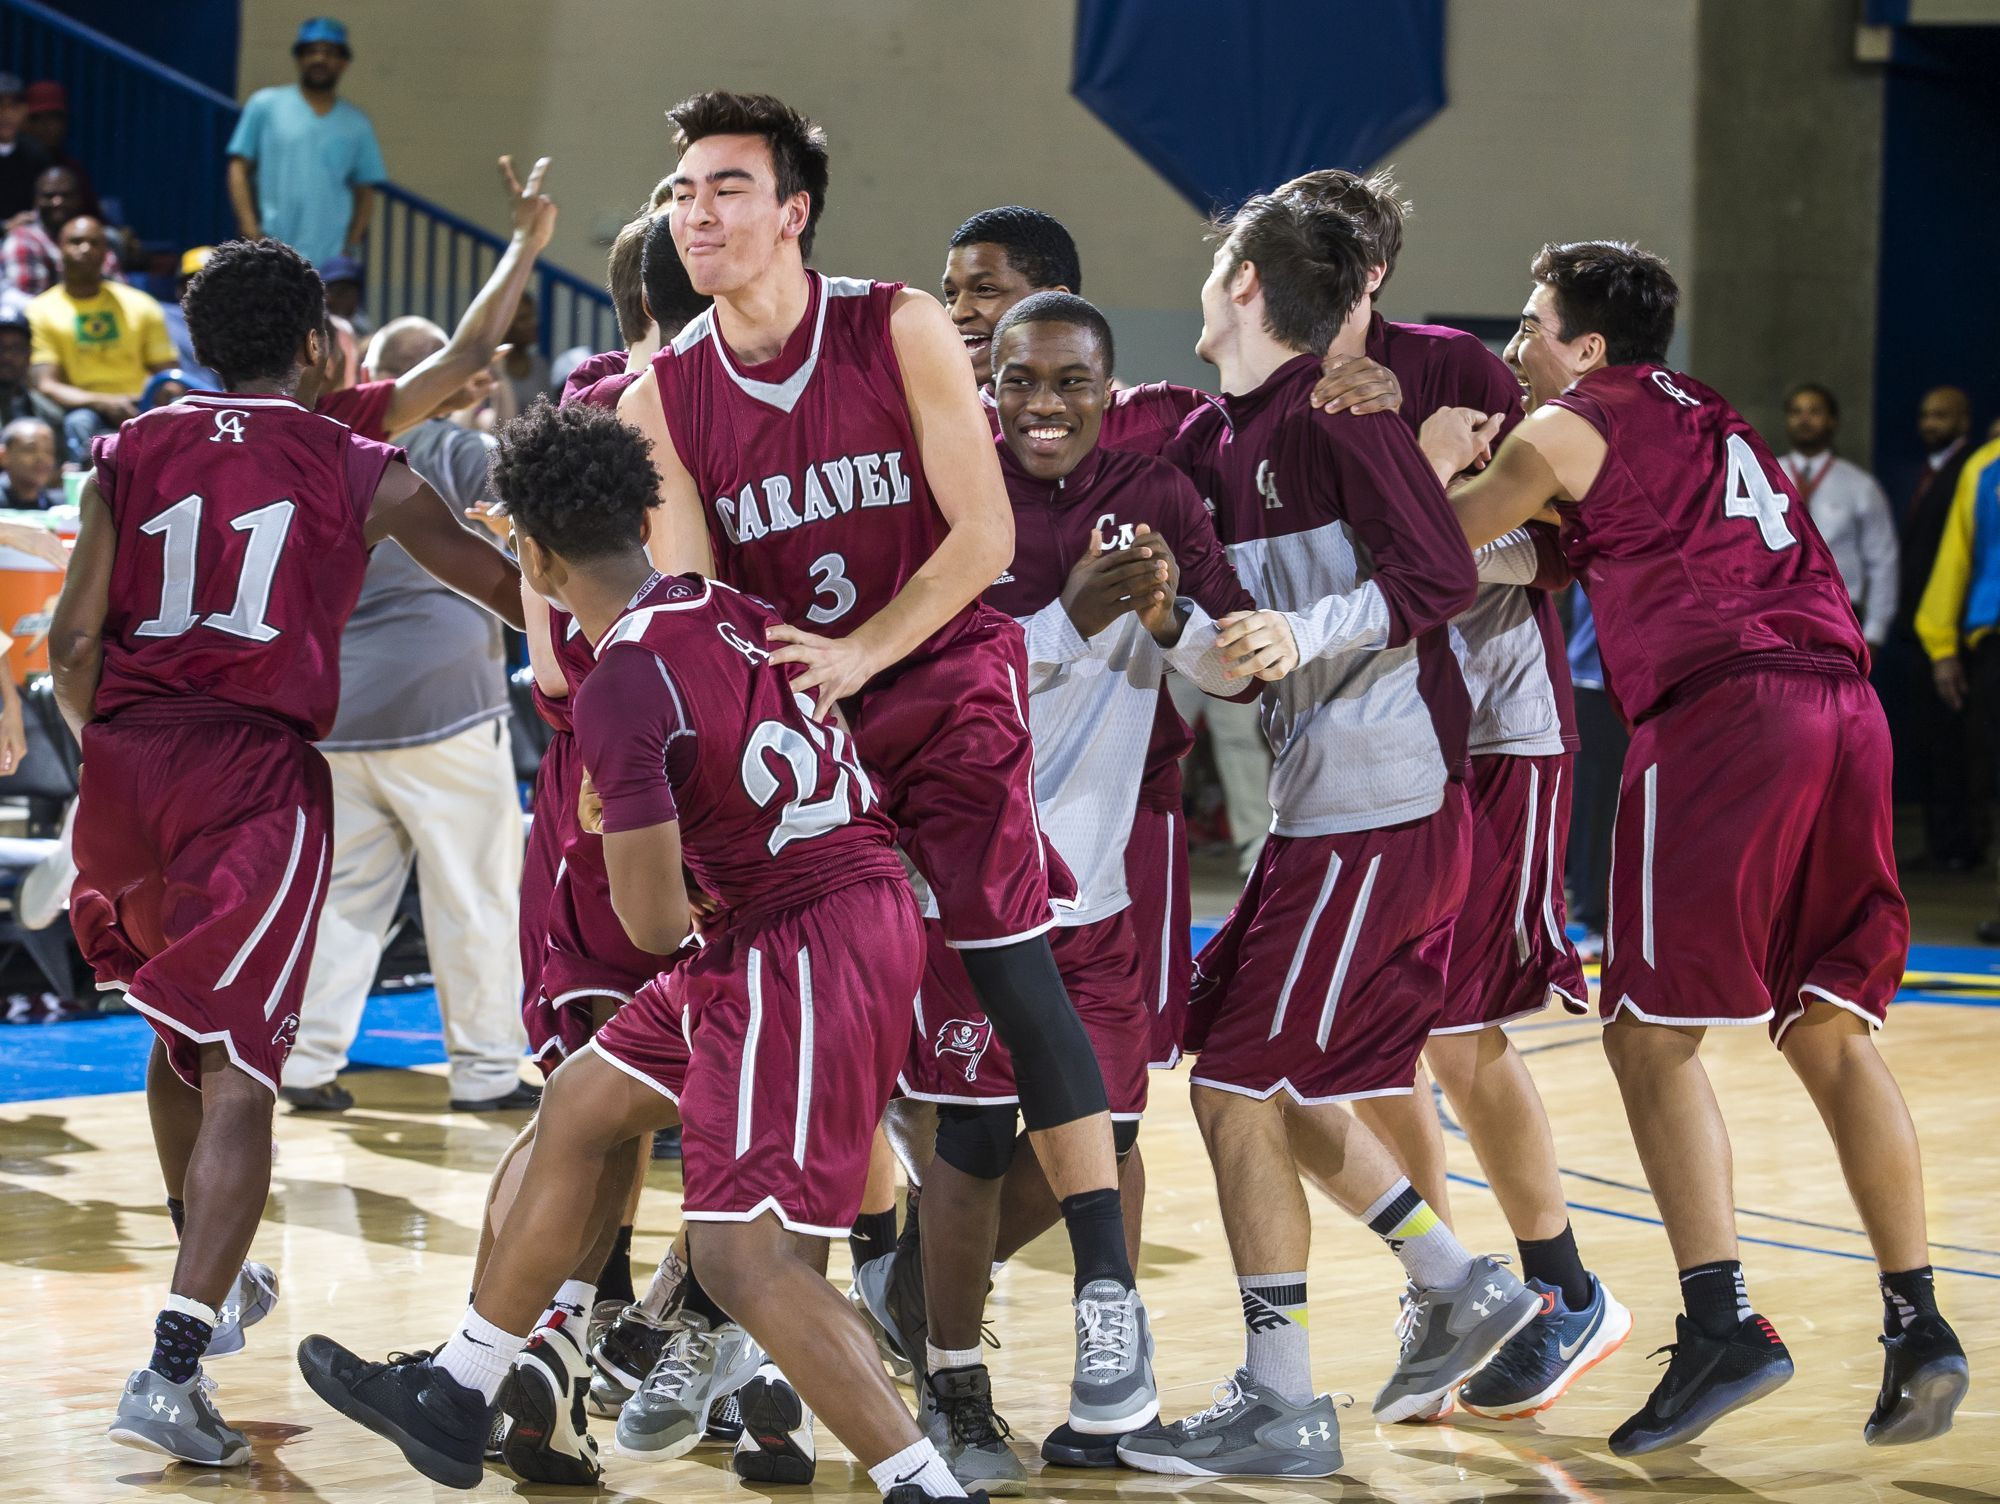 Caravel players celebrate following their 48-47 win over St. Thomas More Academy in the DIAA Boy's State Basketball Tournament semi-finals at the Bob Carpenter Center in Newark on Thursday evening.